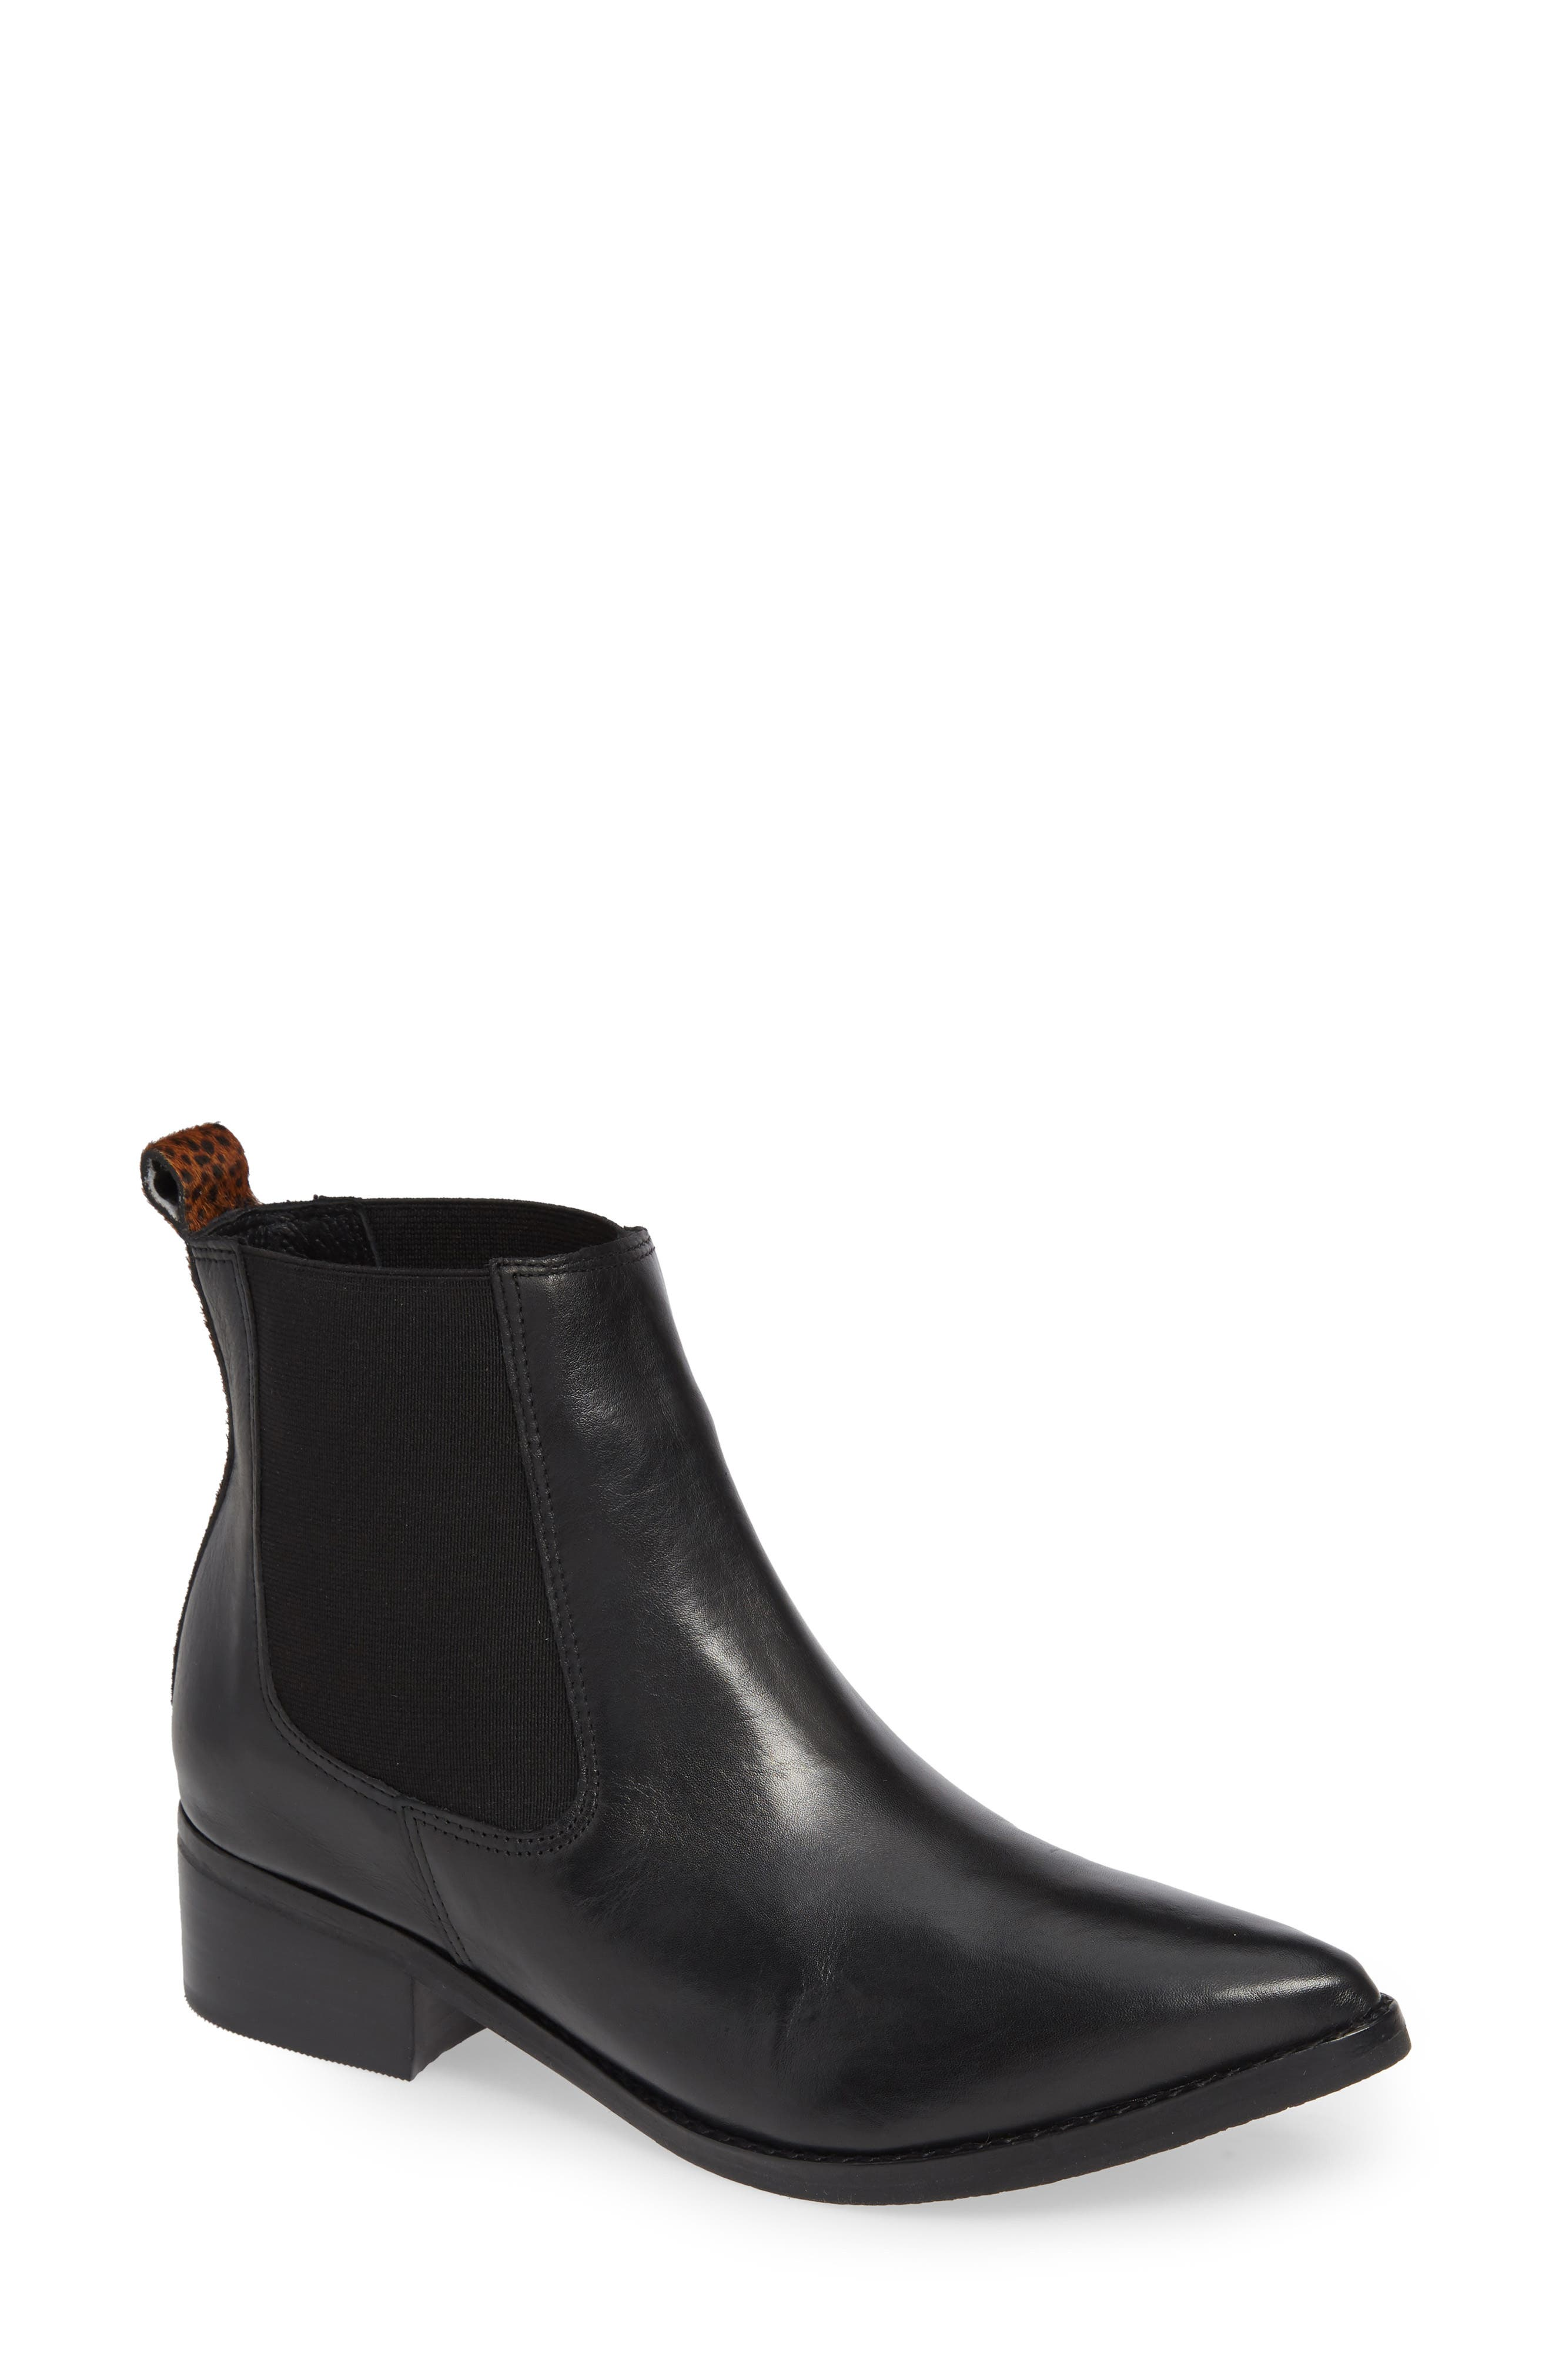 Matisse Moscow Chelsea Boot, Black